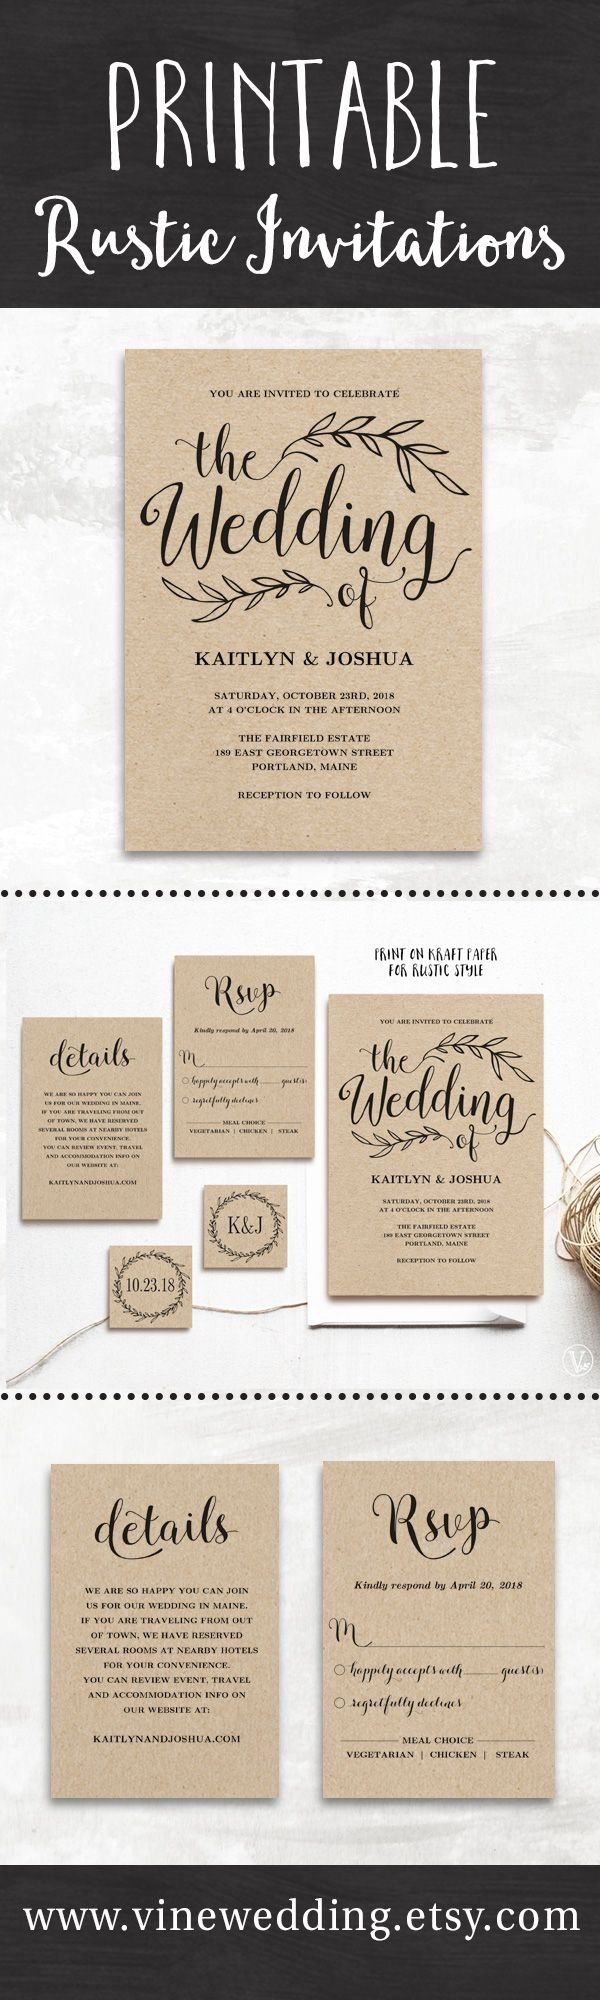 sample of wedding invitation letter%0A Beautiful rustic wedding invitations  Editable instant download templates  you can print as many as you